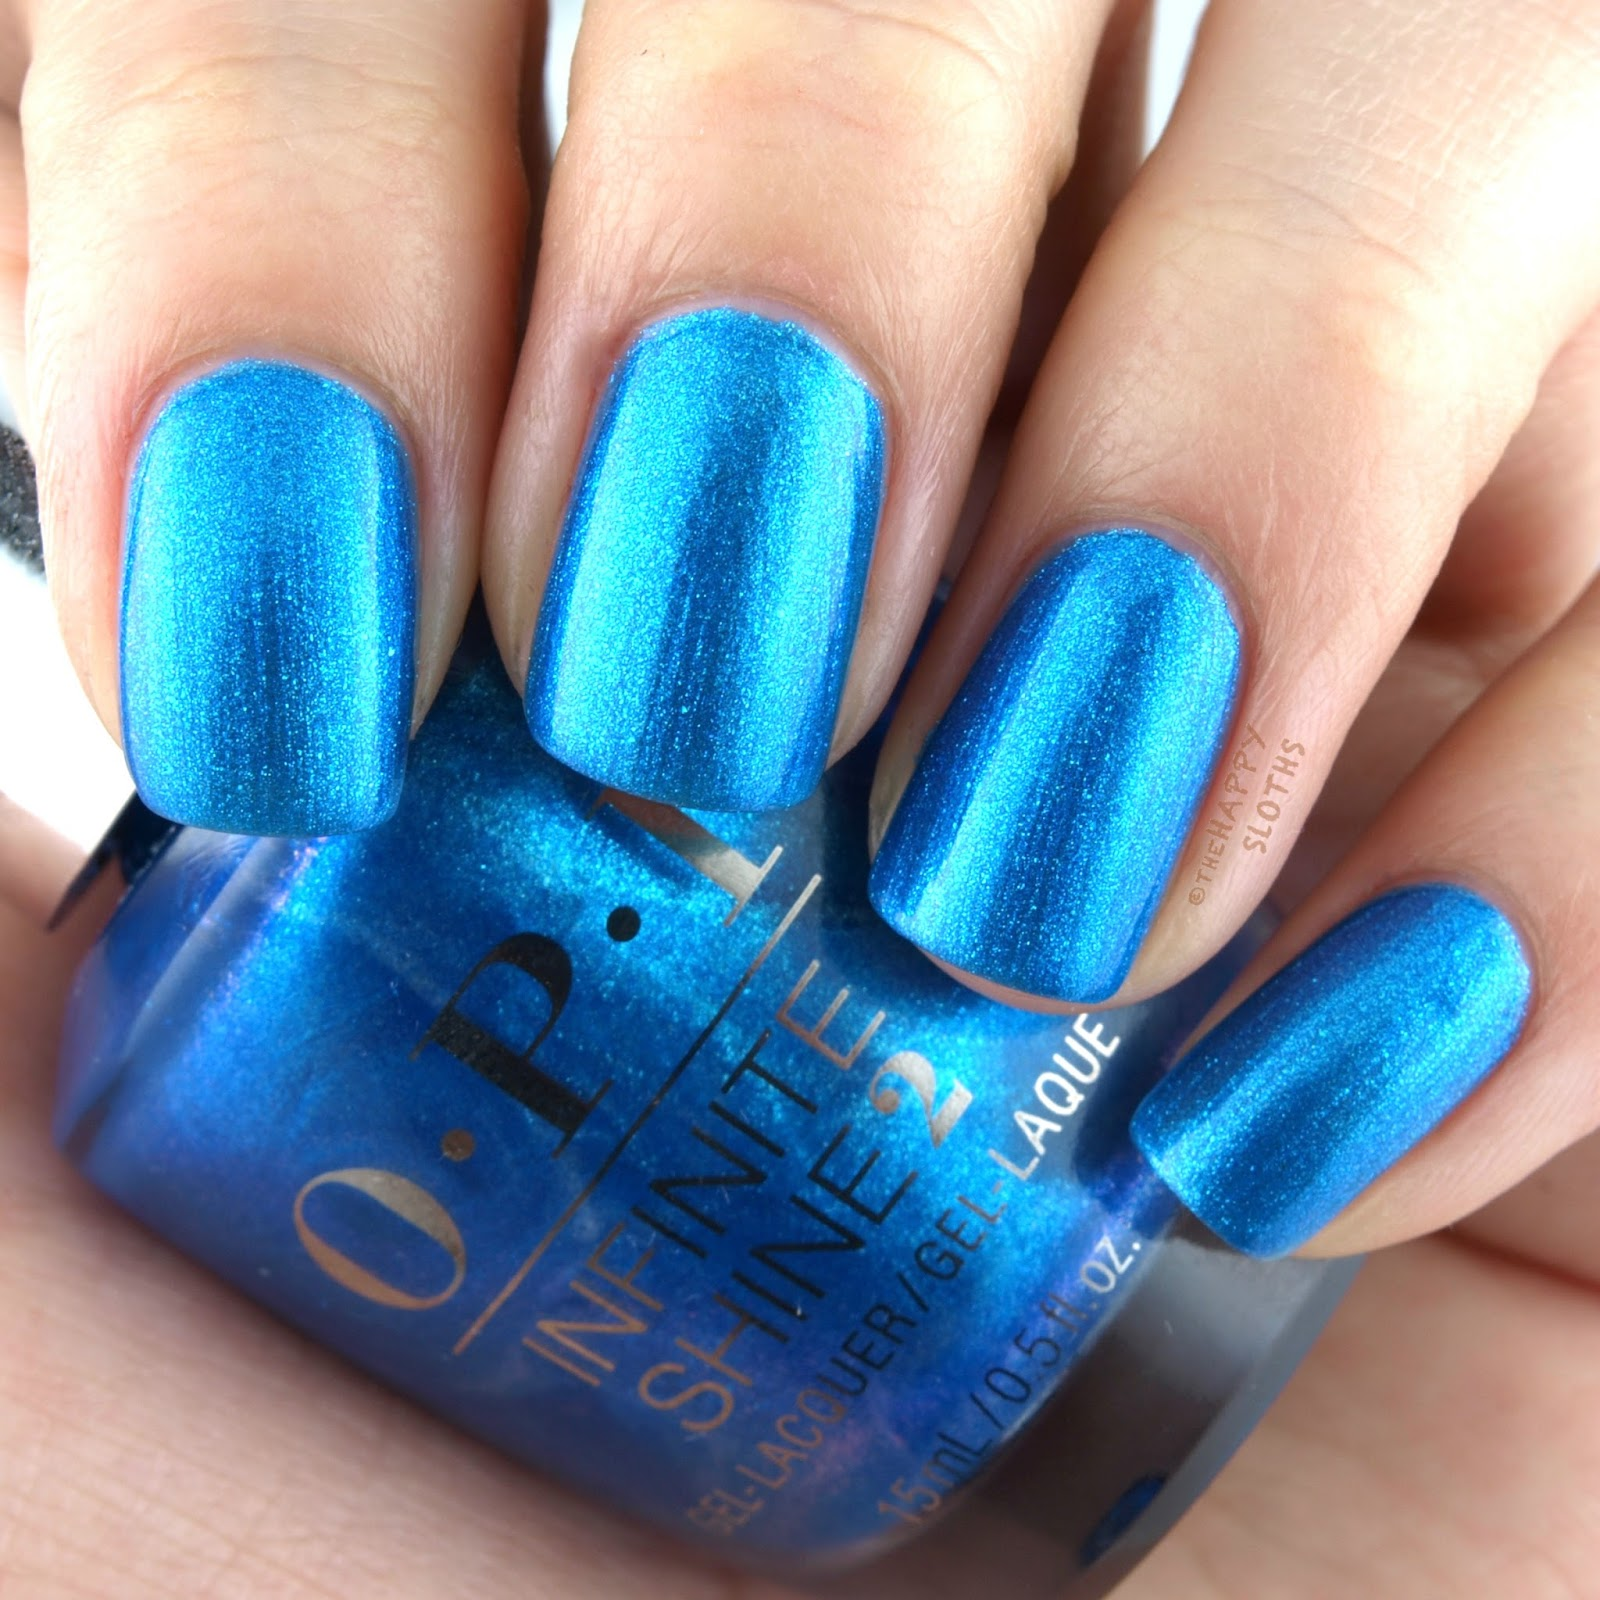 OPI Fiji Do You Sea What I Sea Swatches and Review